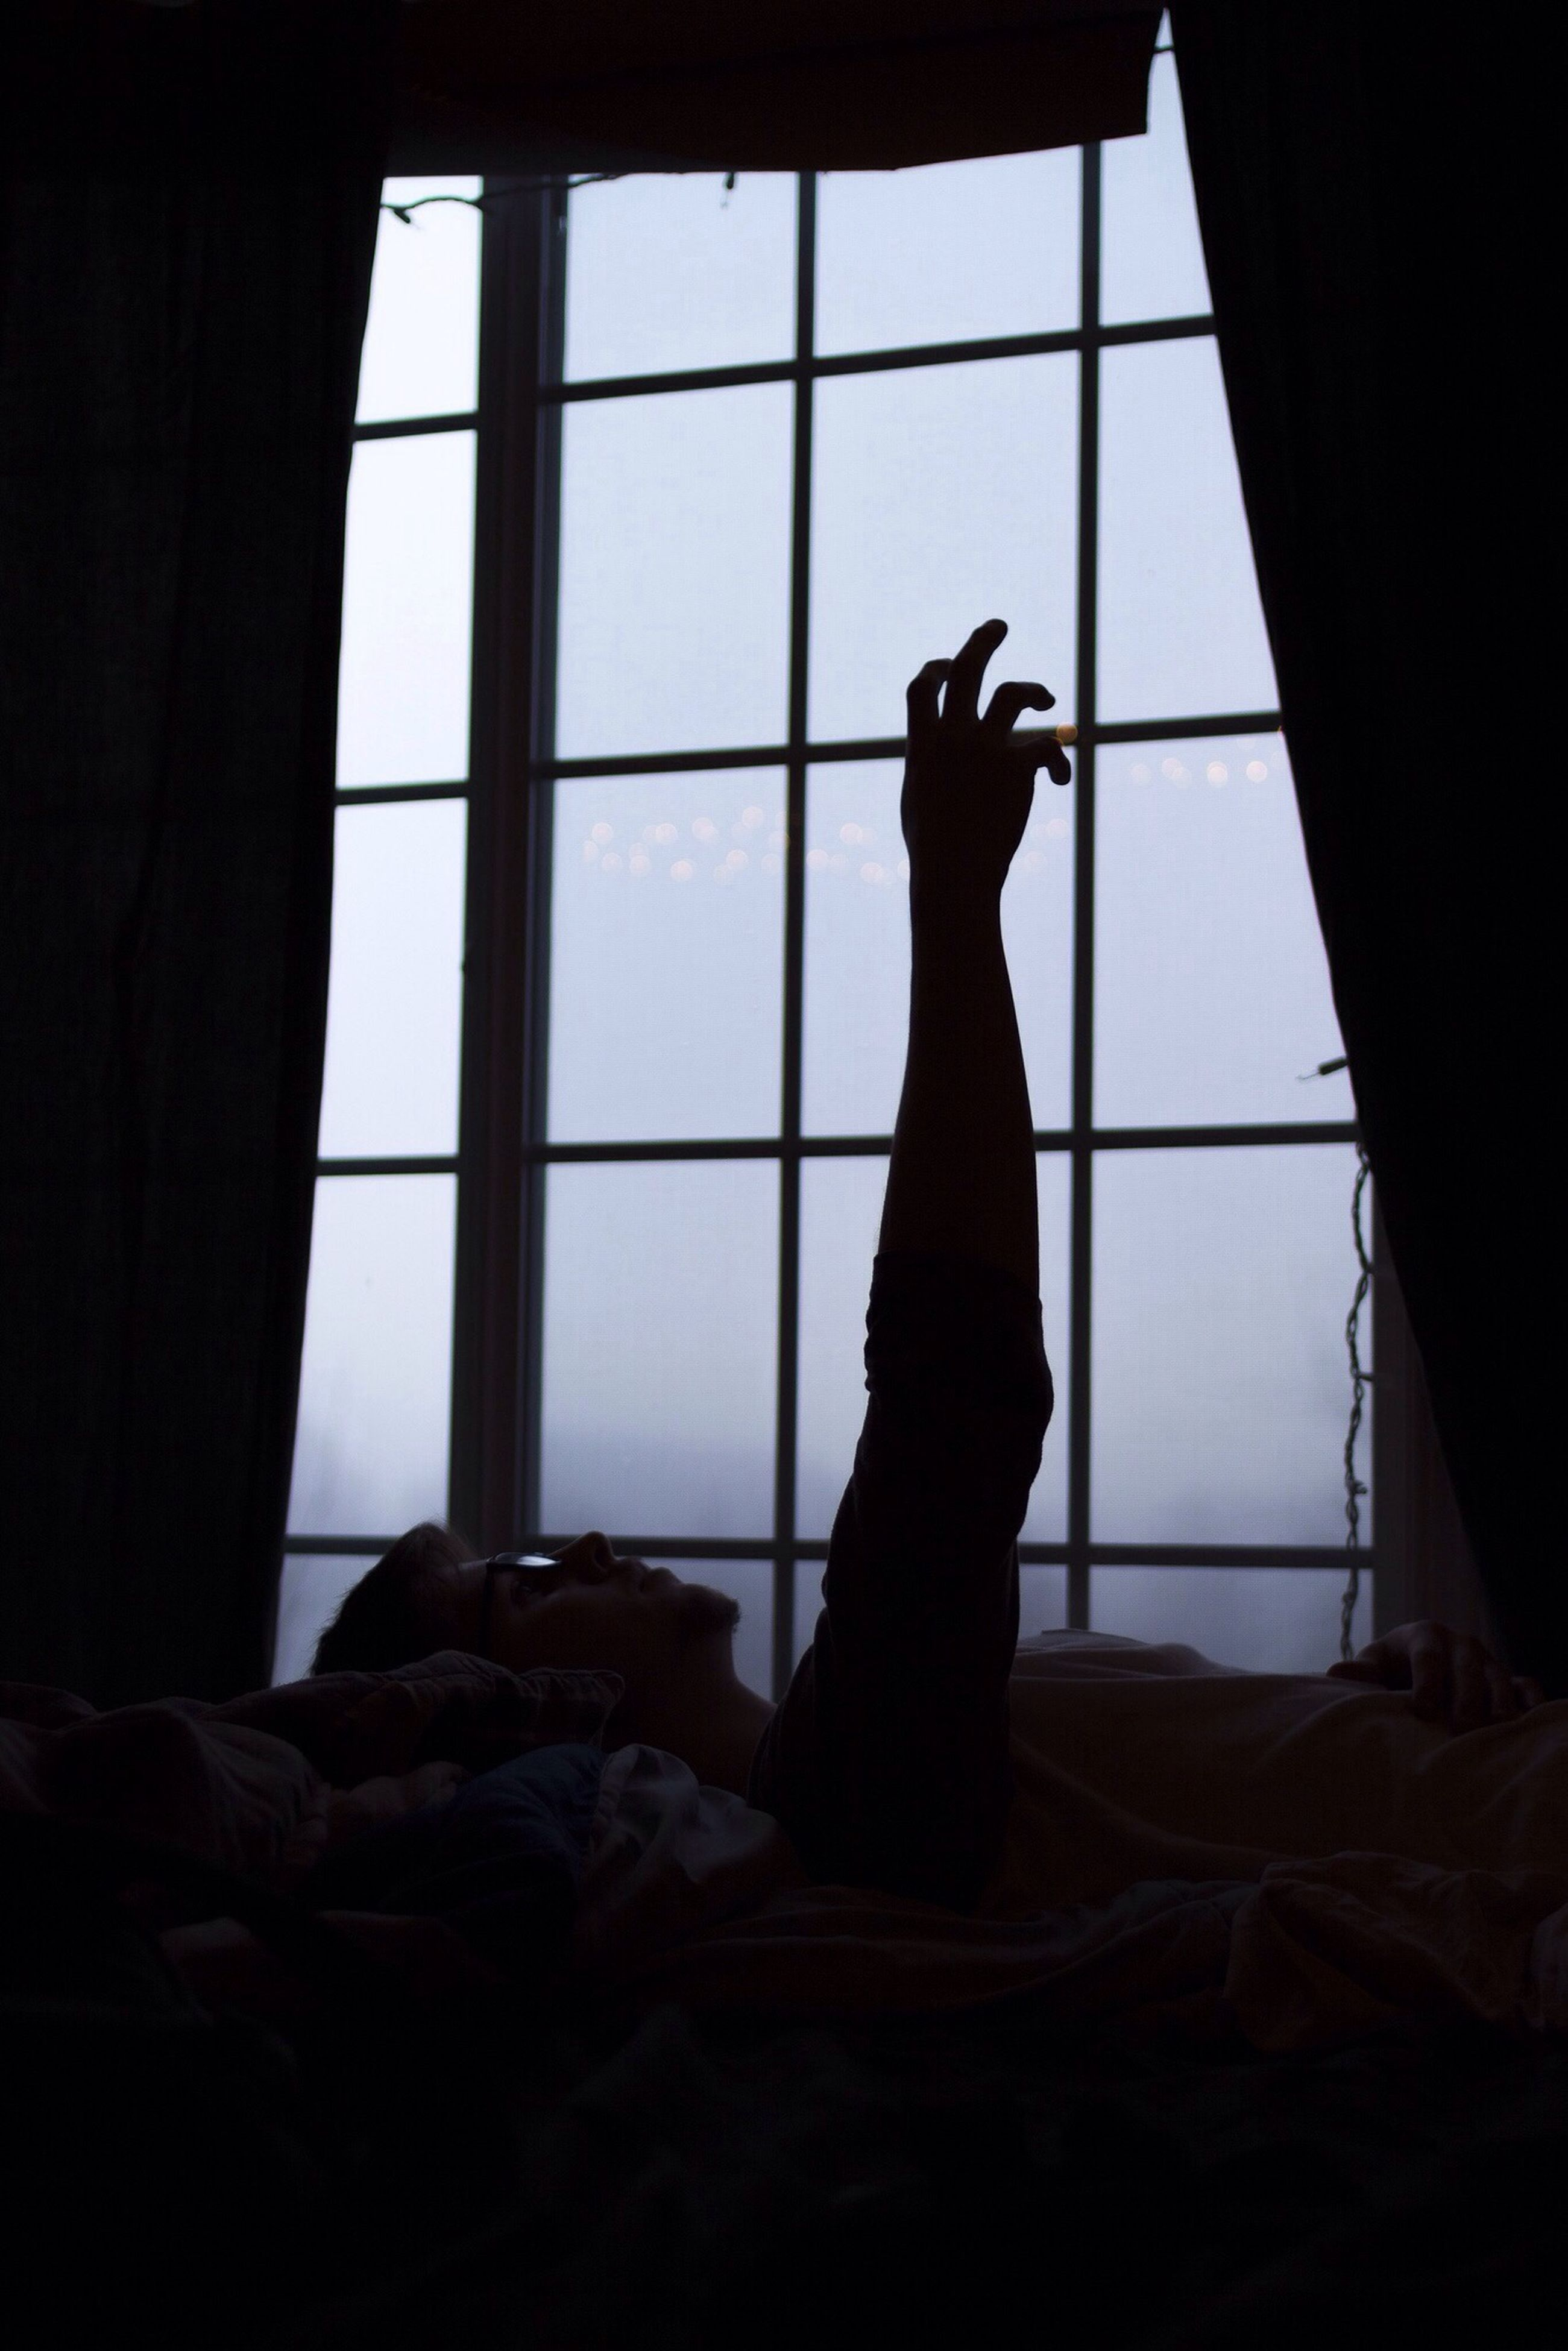 indoors, window, silhouette, sitting, relaxation, home interior, glass - material, transparent, lifestyles, looking through window, standing, person, men, curtain, day, sunlight, leisure activity, low section